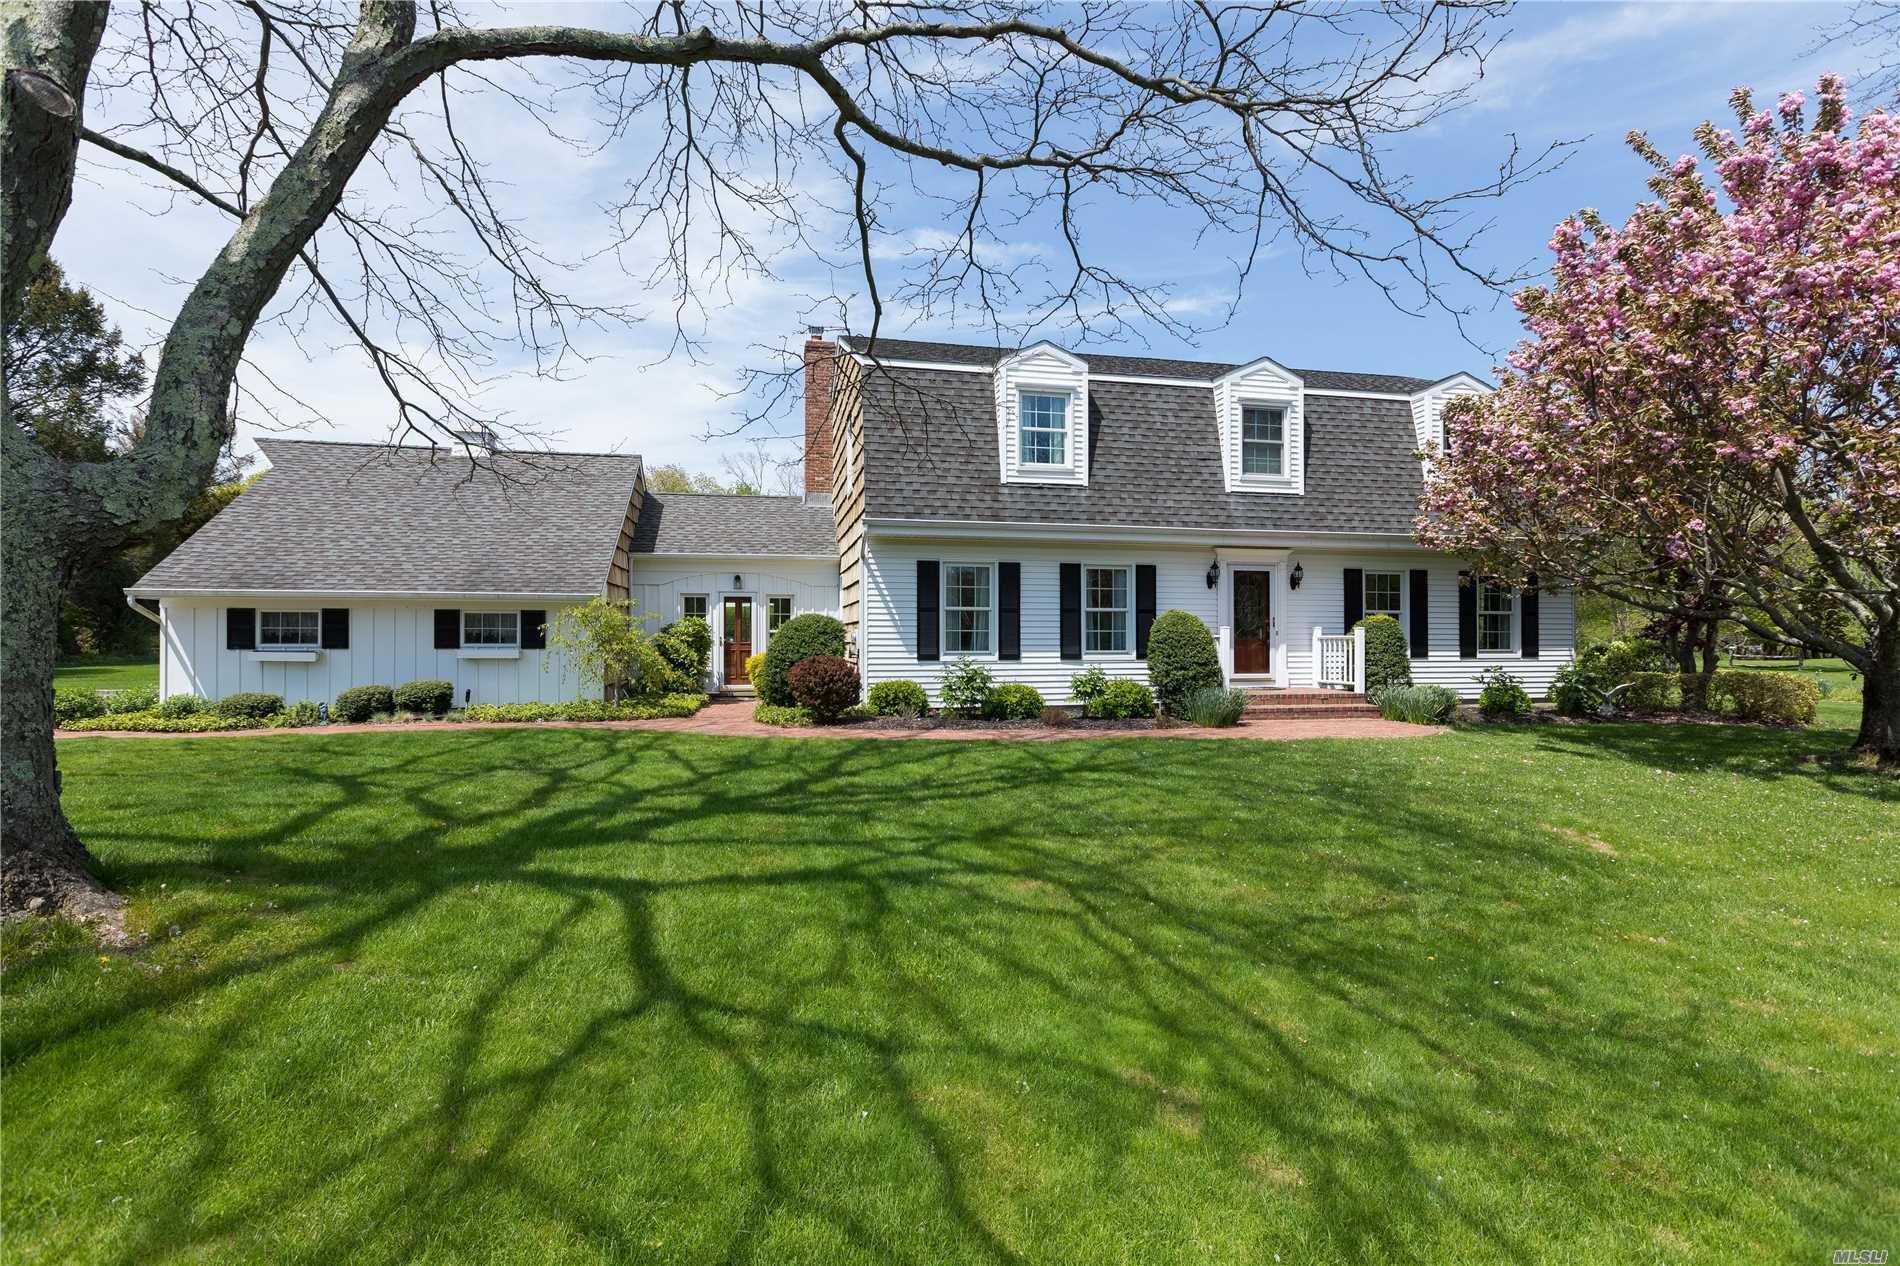 This is the best of the North Fork! Come home to this lovely Dutch Colonial located on a quiet cul-de-sac. Wonderful private garden w/ privets around your 20x40 ig heated swimming pool. This home welcomes you and your guests w/ 4 brs, 3 full baths, formal dr, lr, e-i k, family room w/ fp, sunroom, and finished basement! Wood floors throughout, new windows, heater, furnace, new cac, and more! Founders landing district w/ potential for boat dock depending on lottery system, not guaranteed.